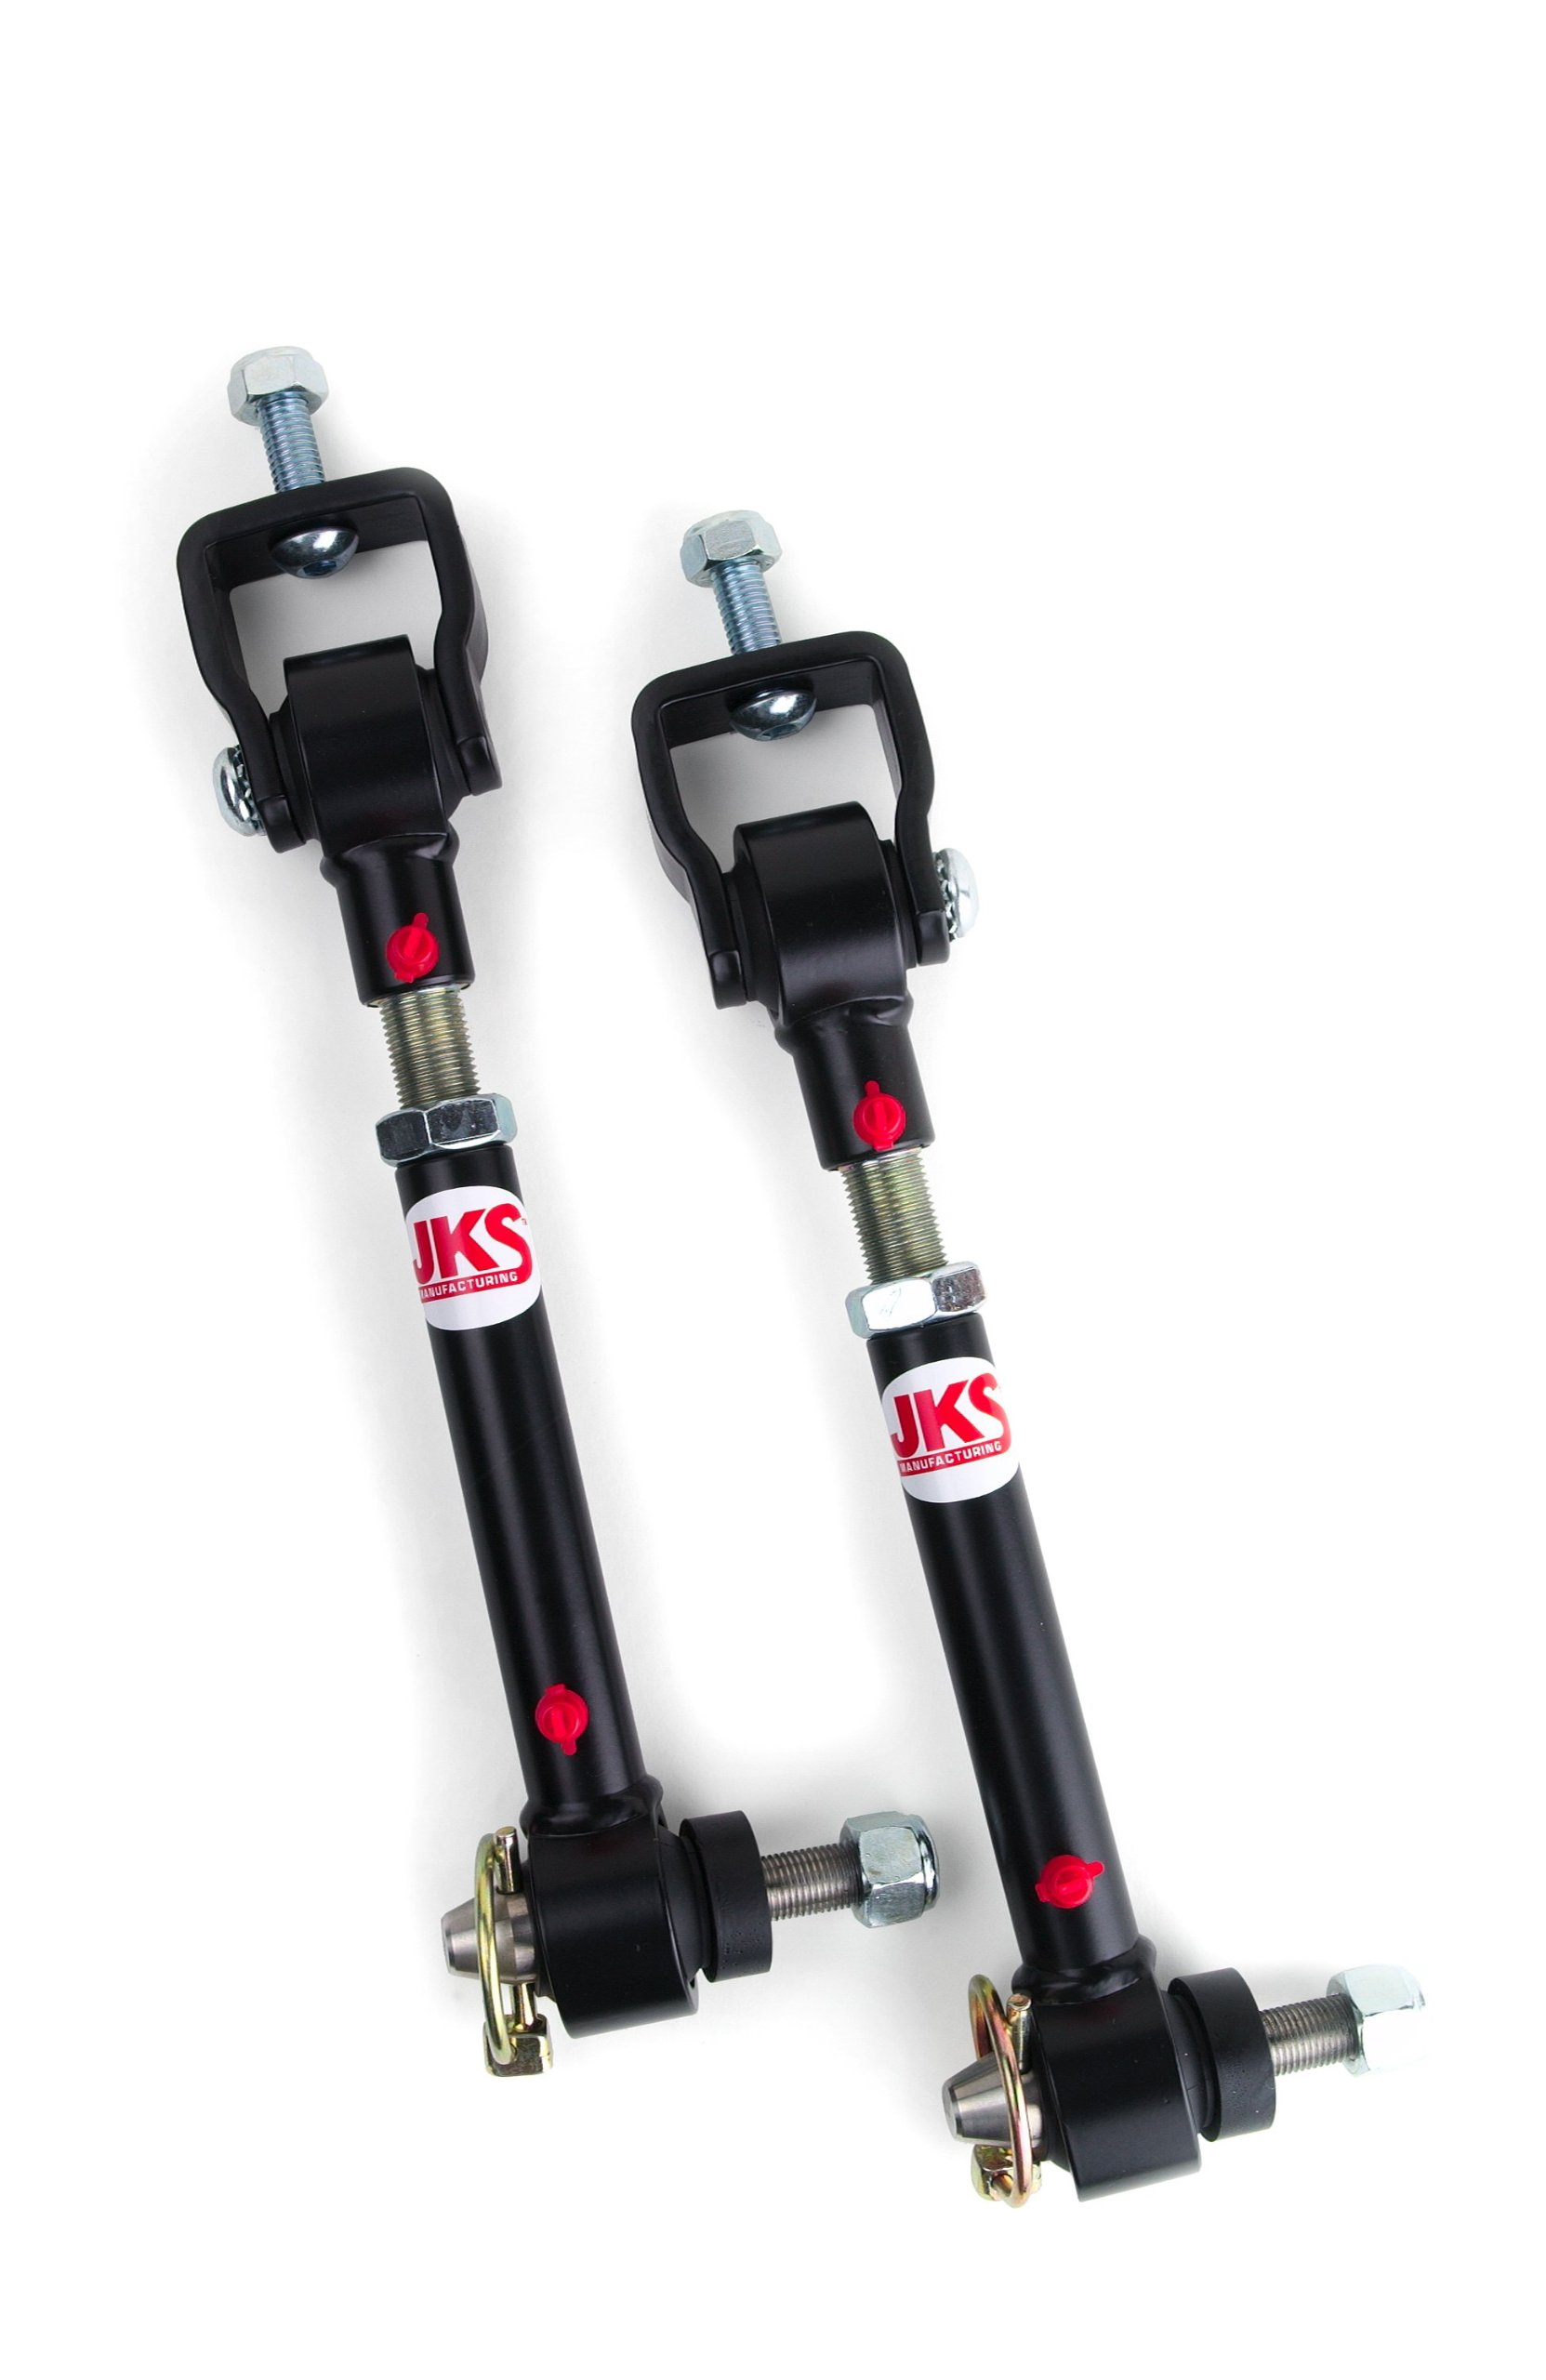 JKS 2001 Front Swaybar Quicker Disconnect System for Jeep TJ by JKS